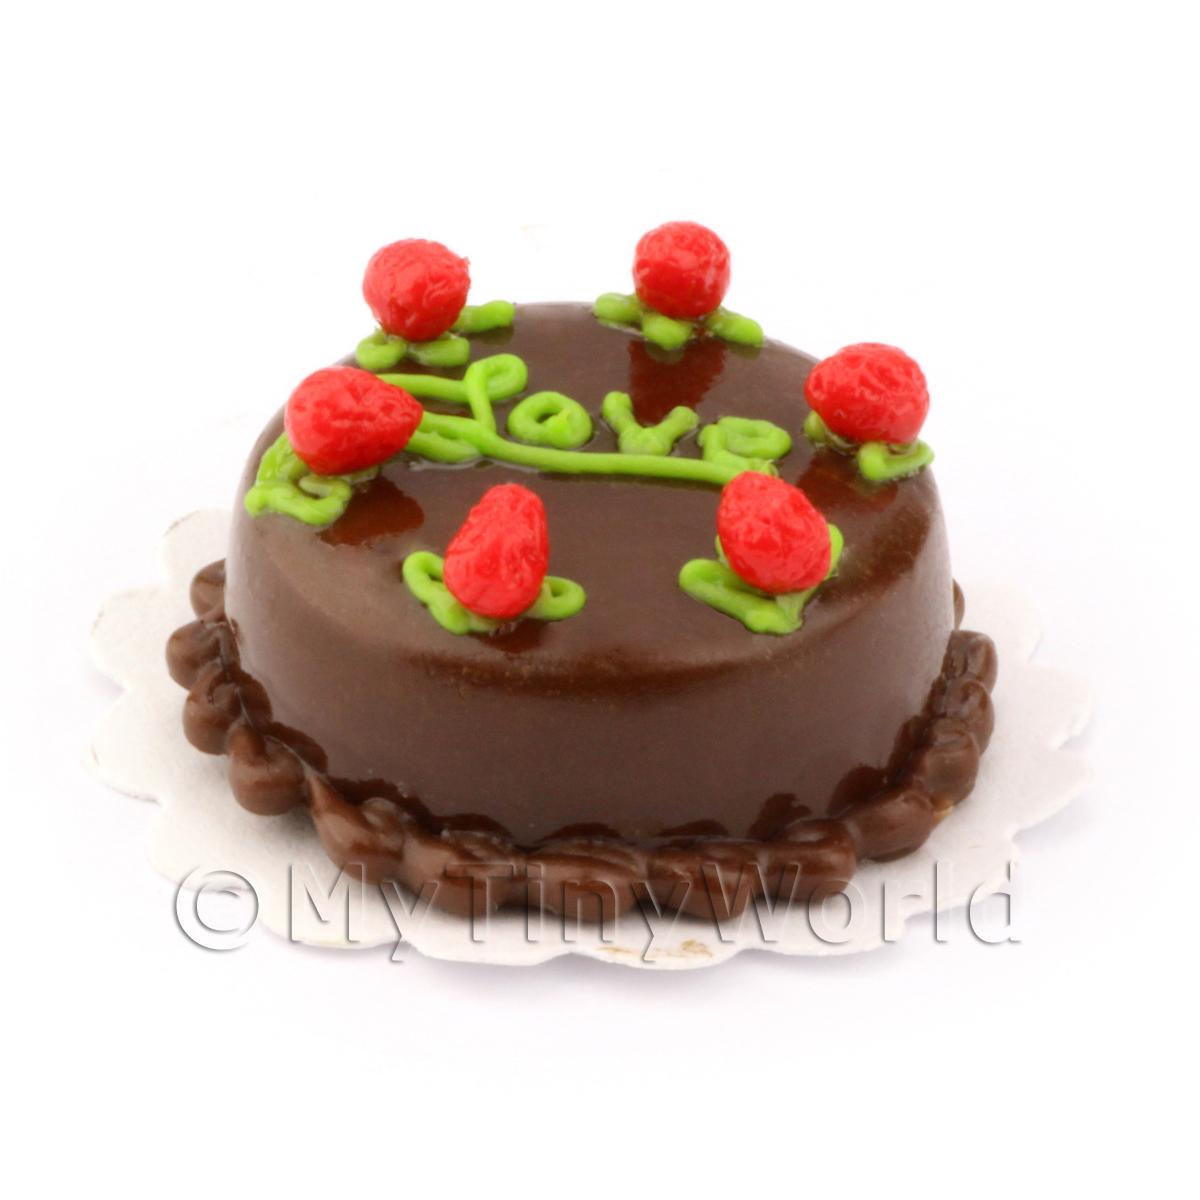 Dolls House Miniature Chocolate Cake With Strawberries